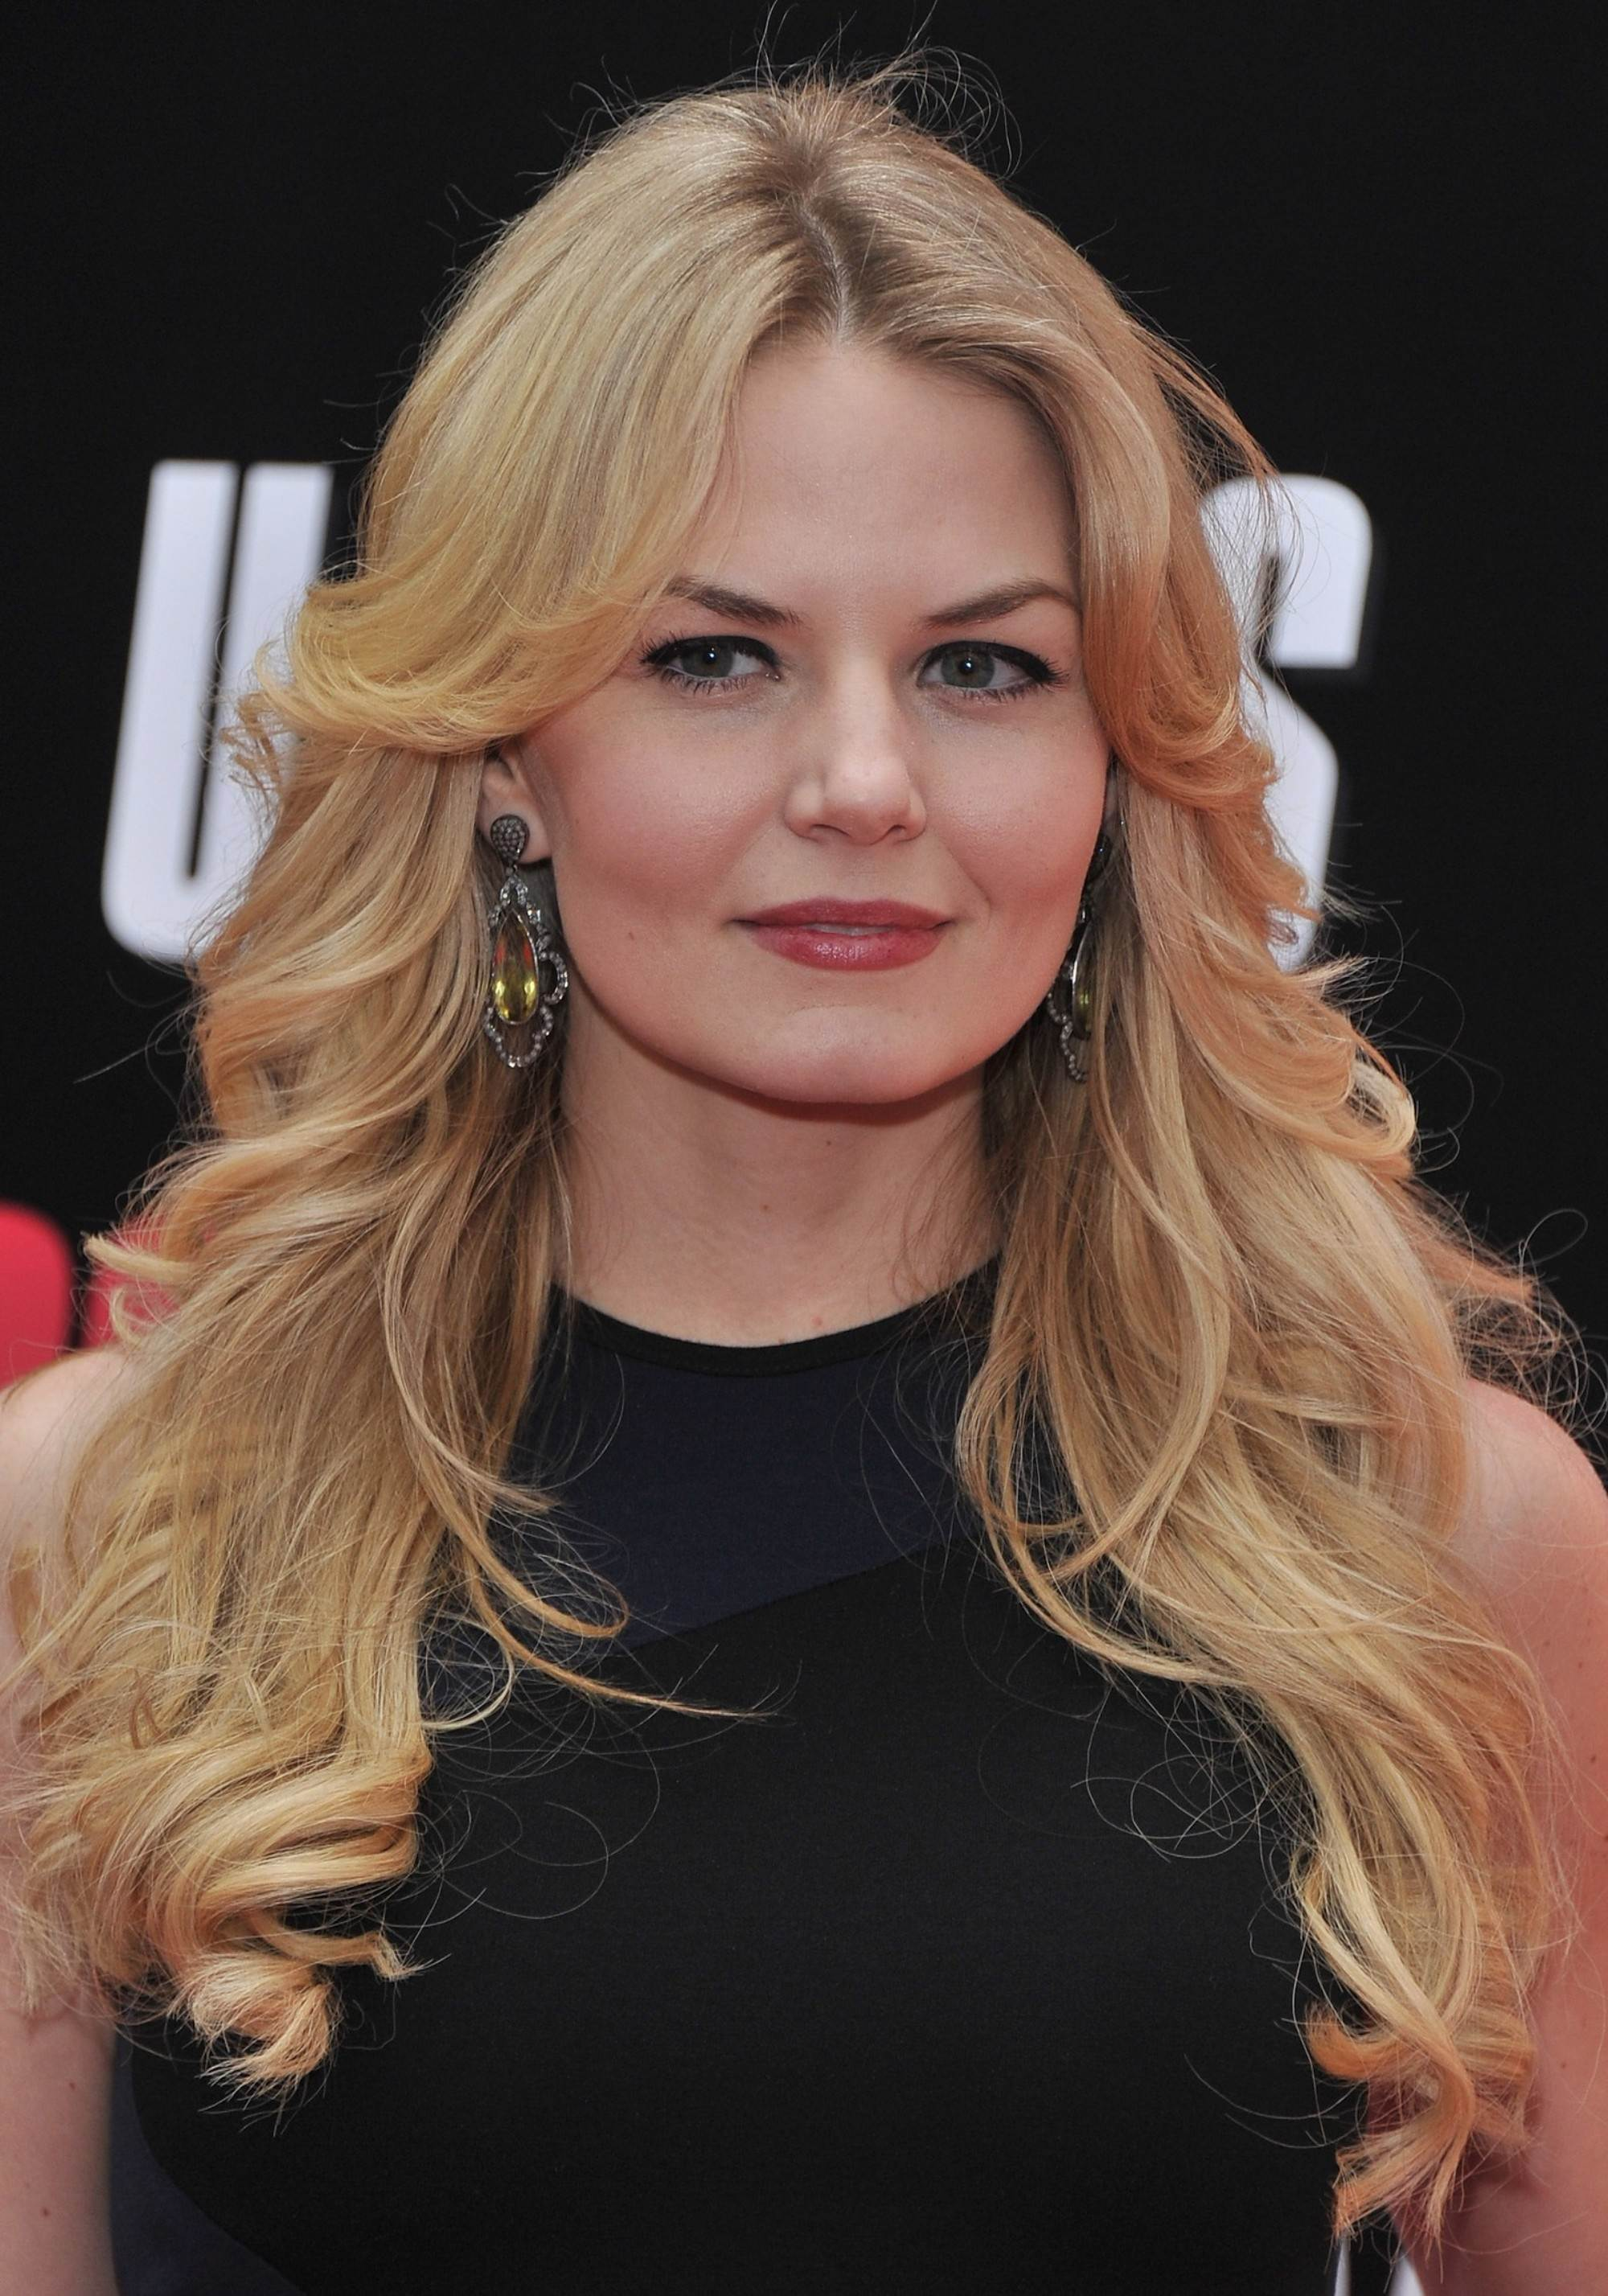 Jennifer Morrison at the premiere of Mission Impossible